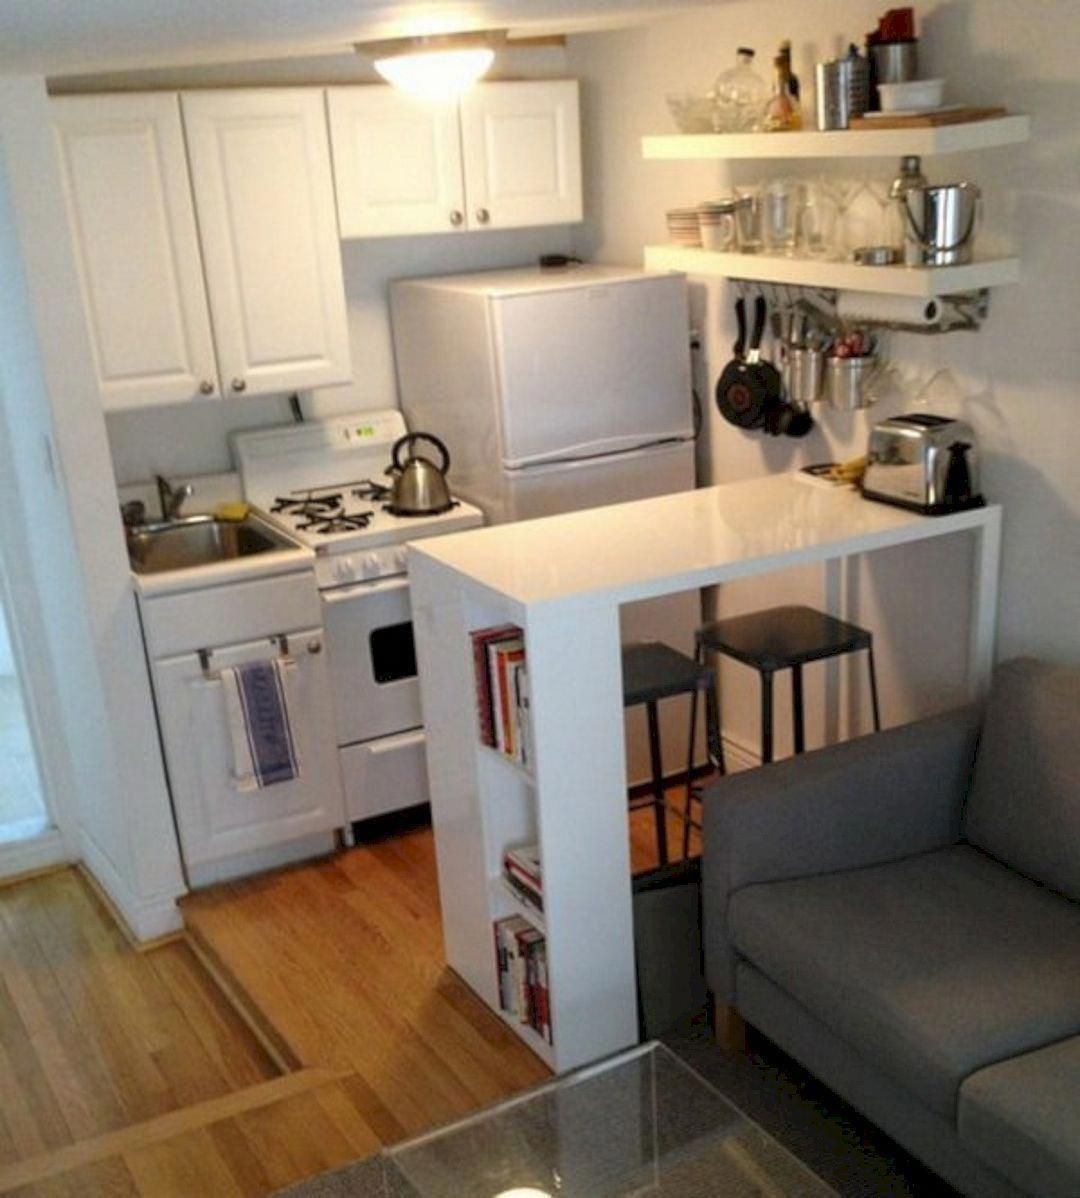 The Most Captivating Simple Kitchen Design For Middle Class Family ...